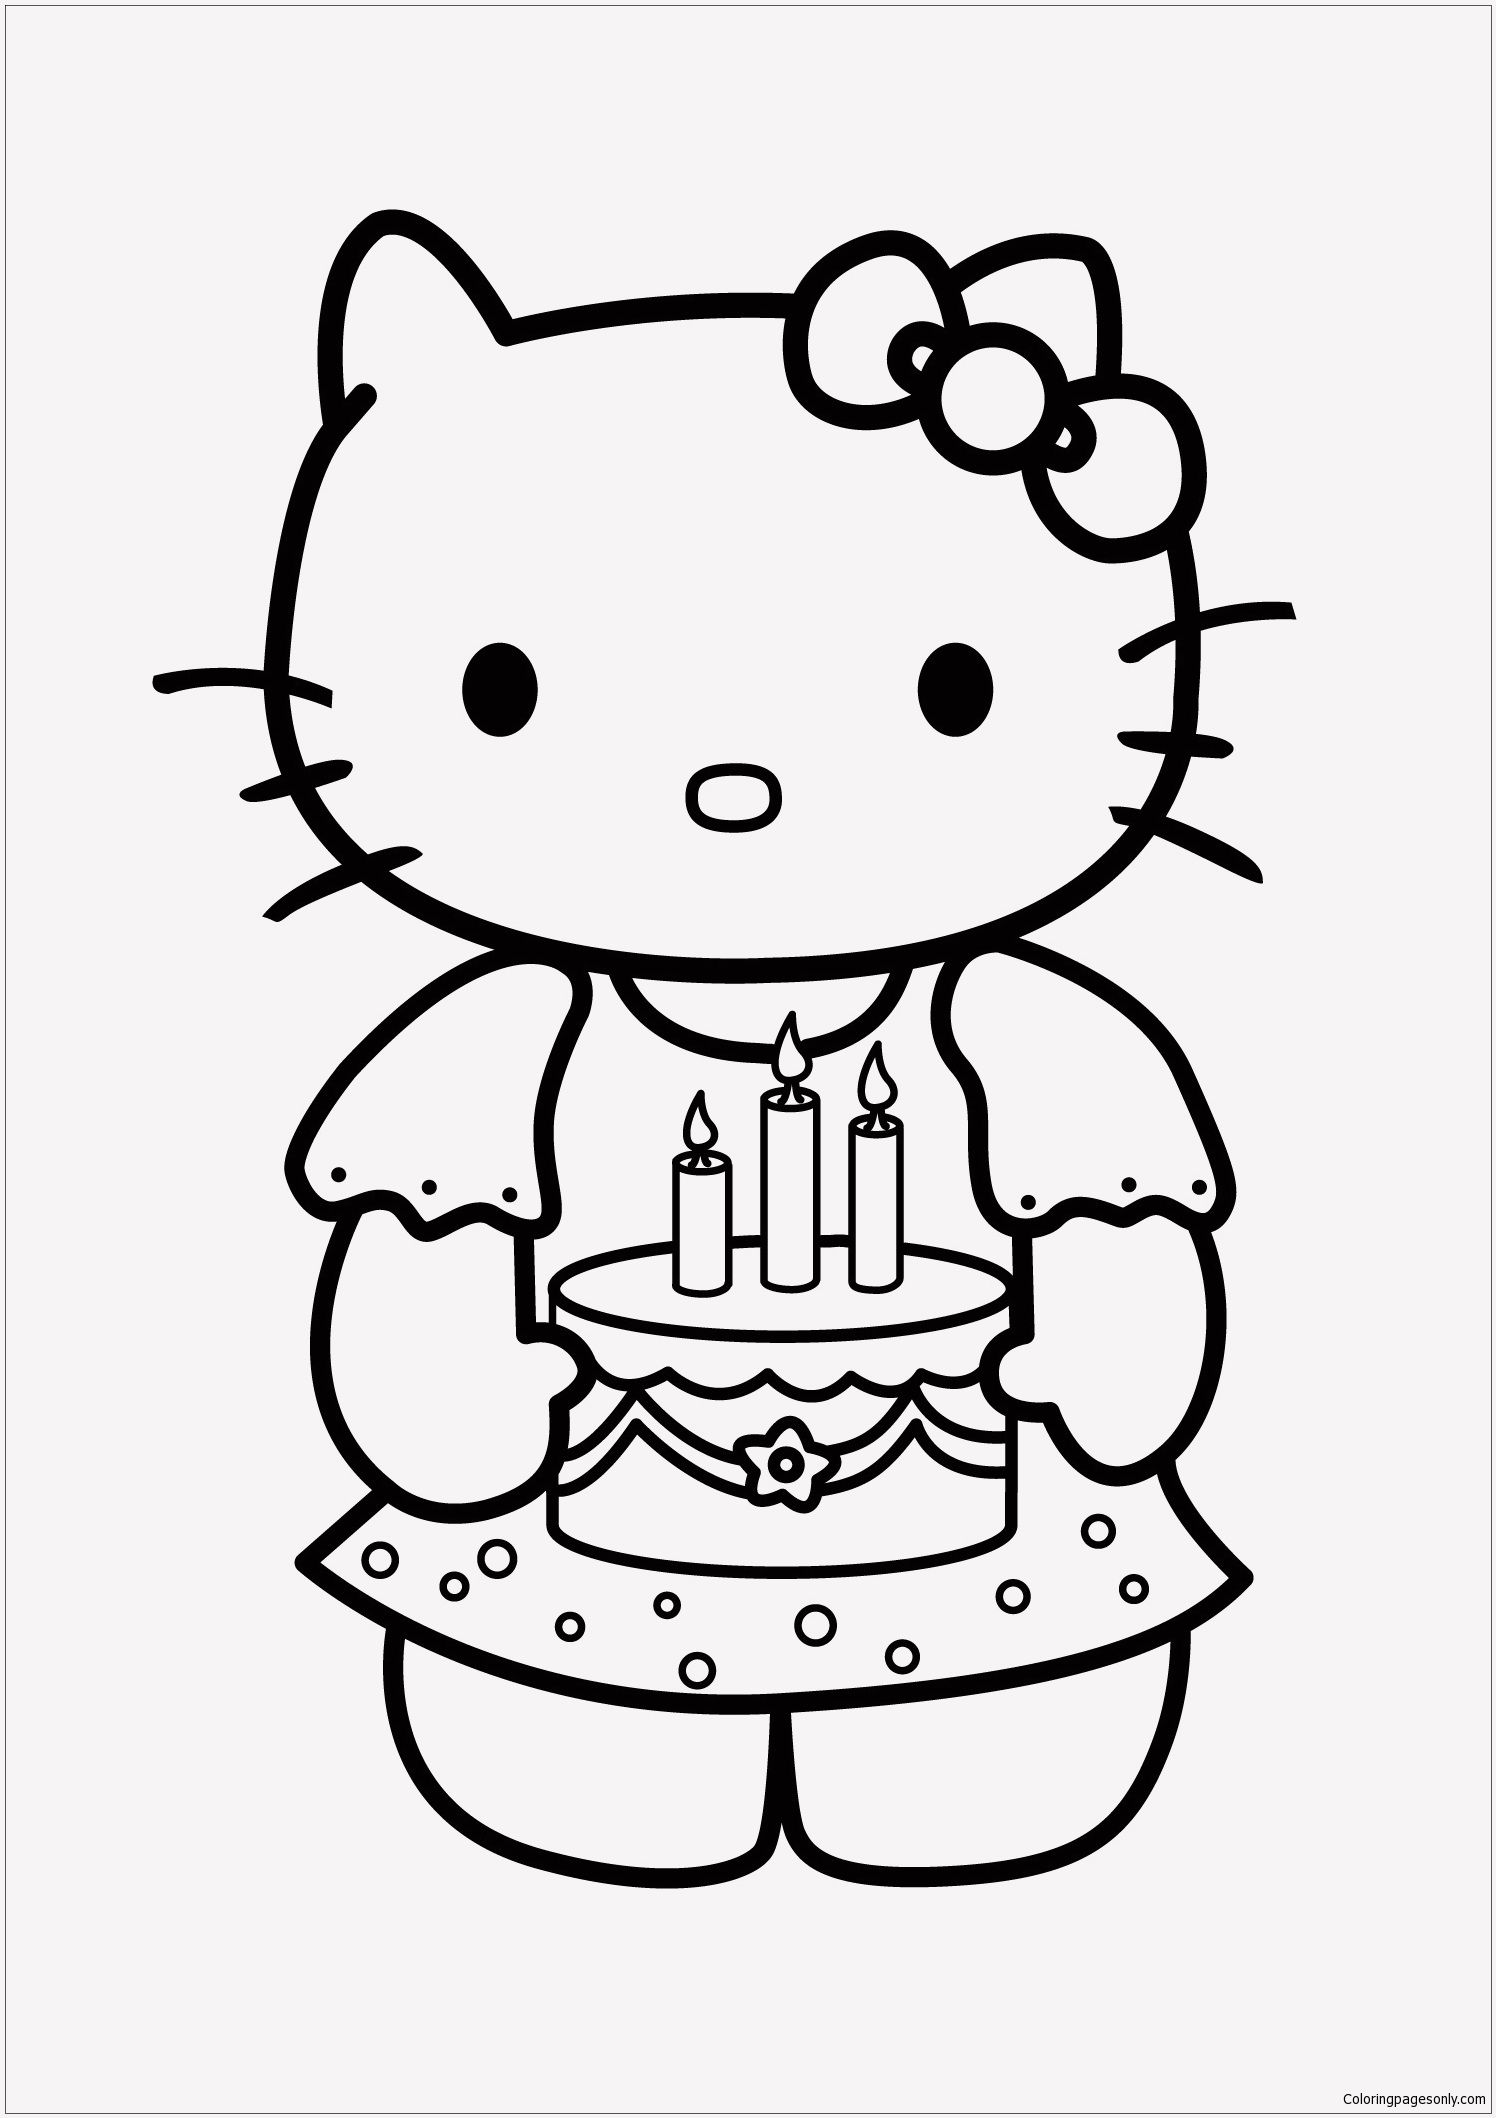 18 Baby Hello Kitty Coloring Pages In 2020 Happy Birthday Coloring Pages Birthday Coloring Pages Hello Kitty Colouring Pages